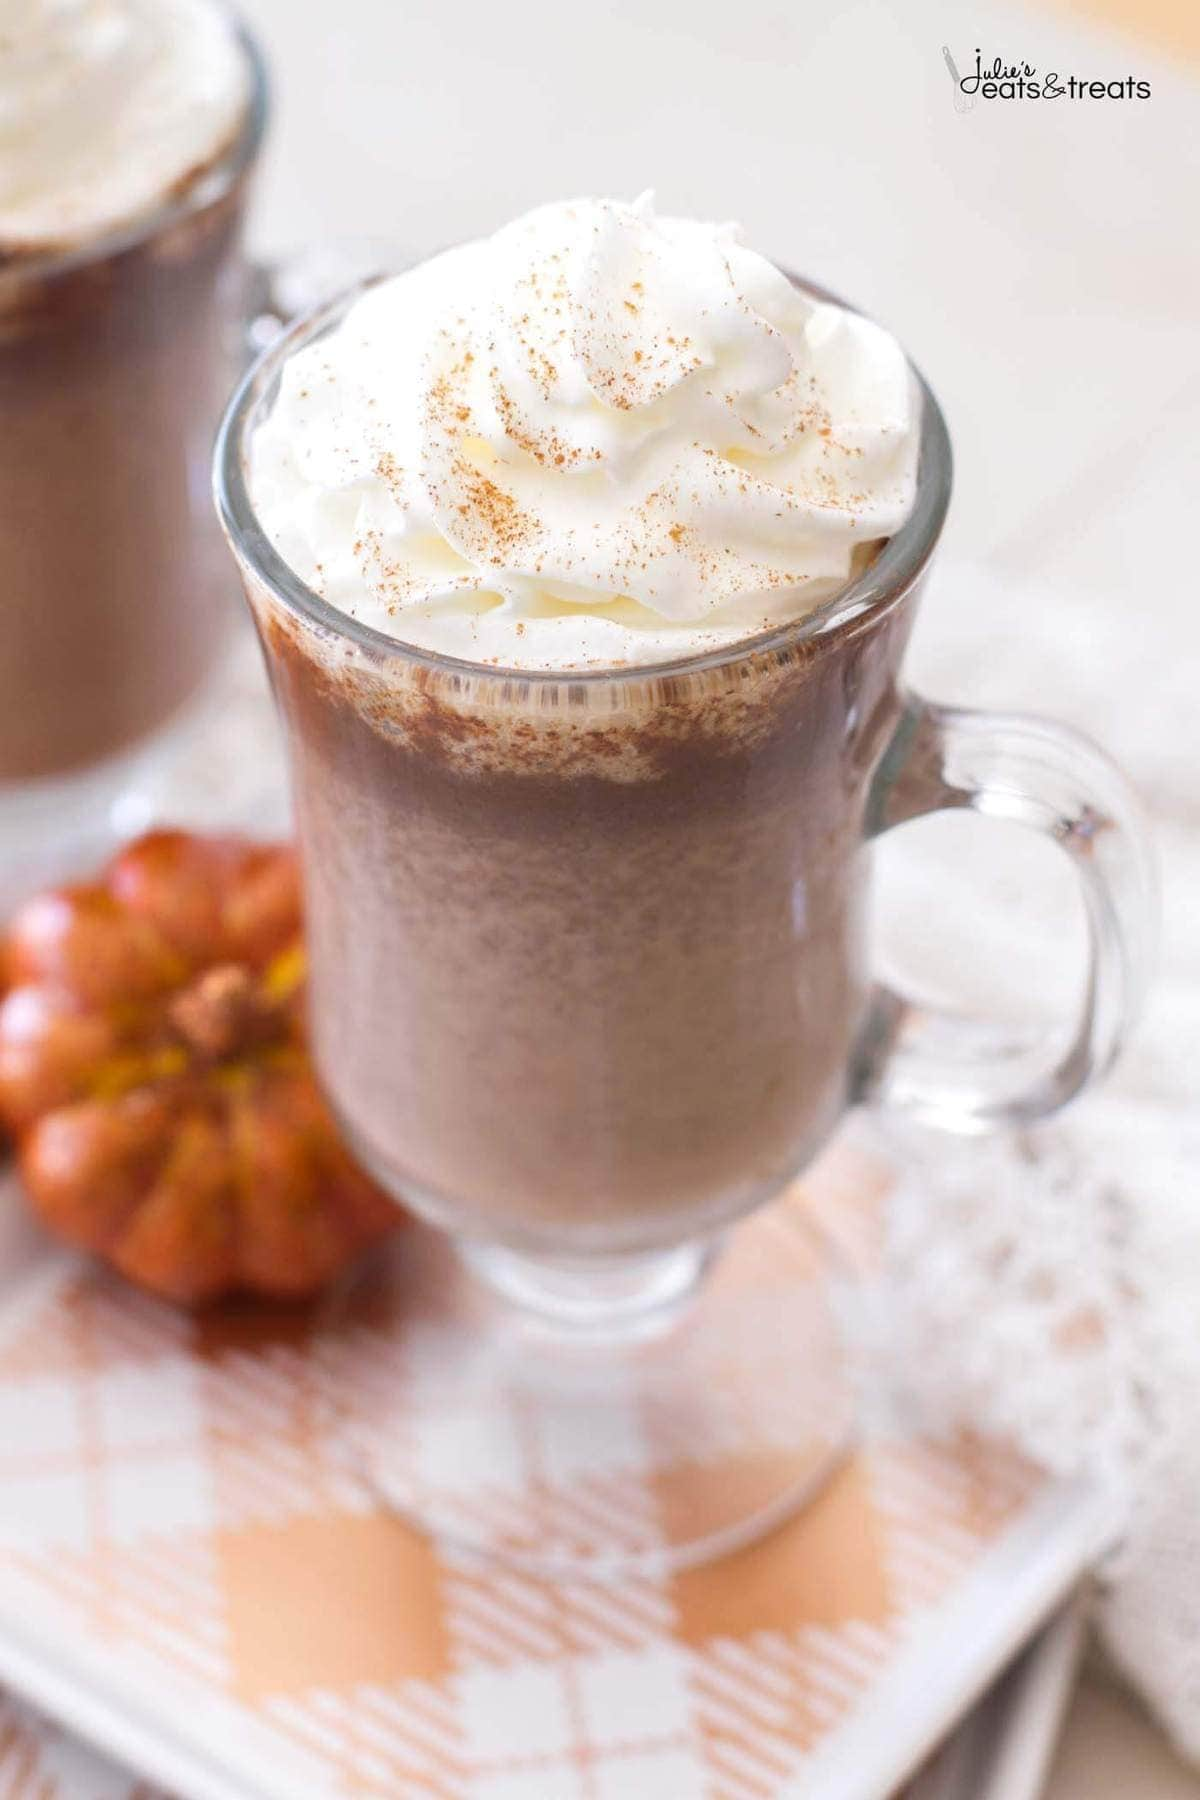 This homemade pumpkin hot chocolate recipe uses real pumpkin puree and pumpkin pie spices to add a fall spin to a classic drink!